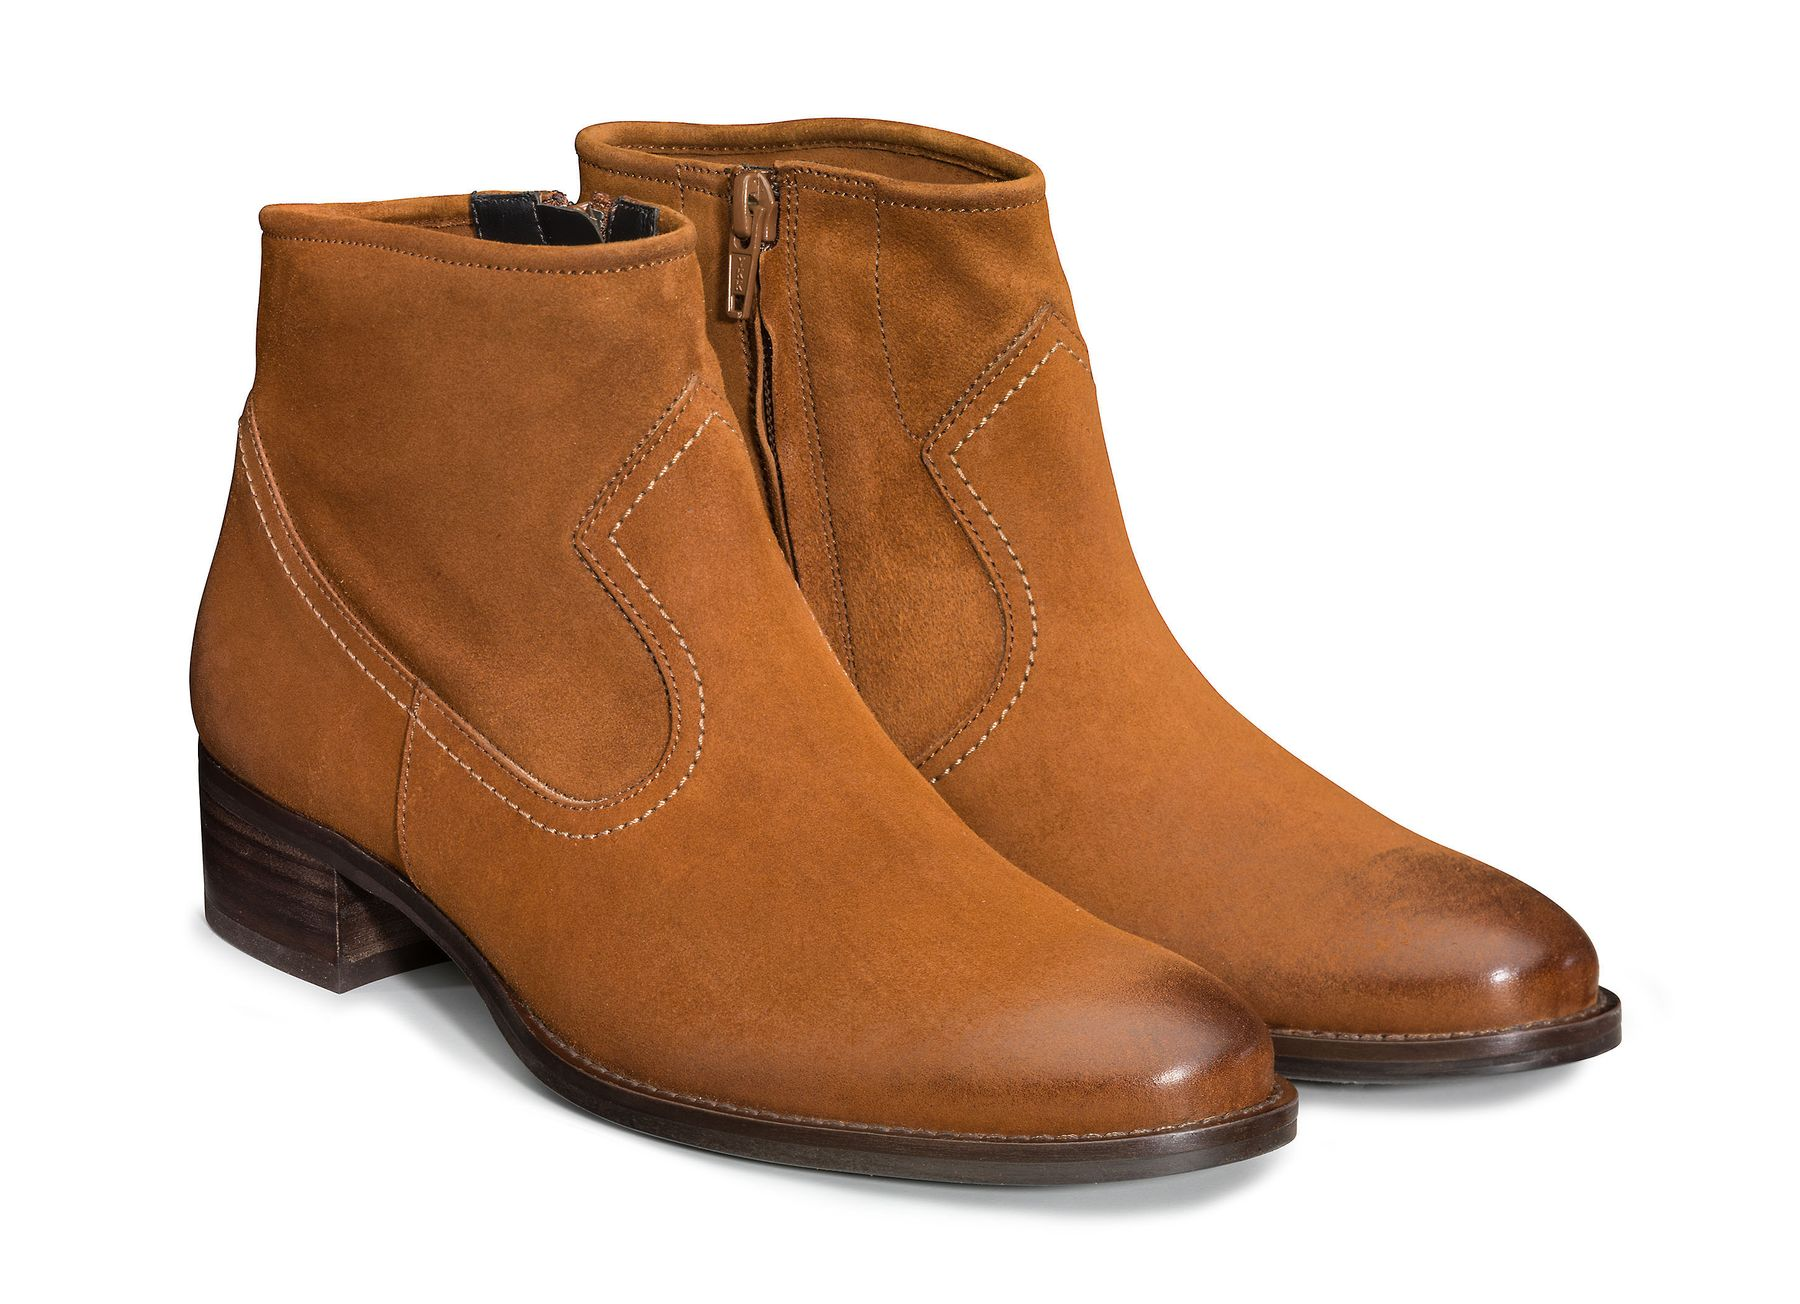 Ankle boots for women in cognac brown Paul Green